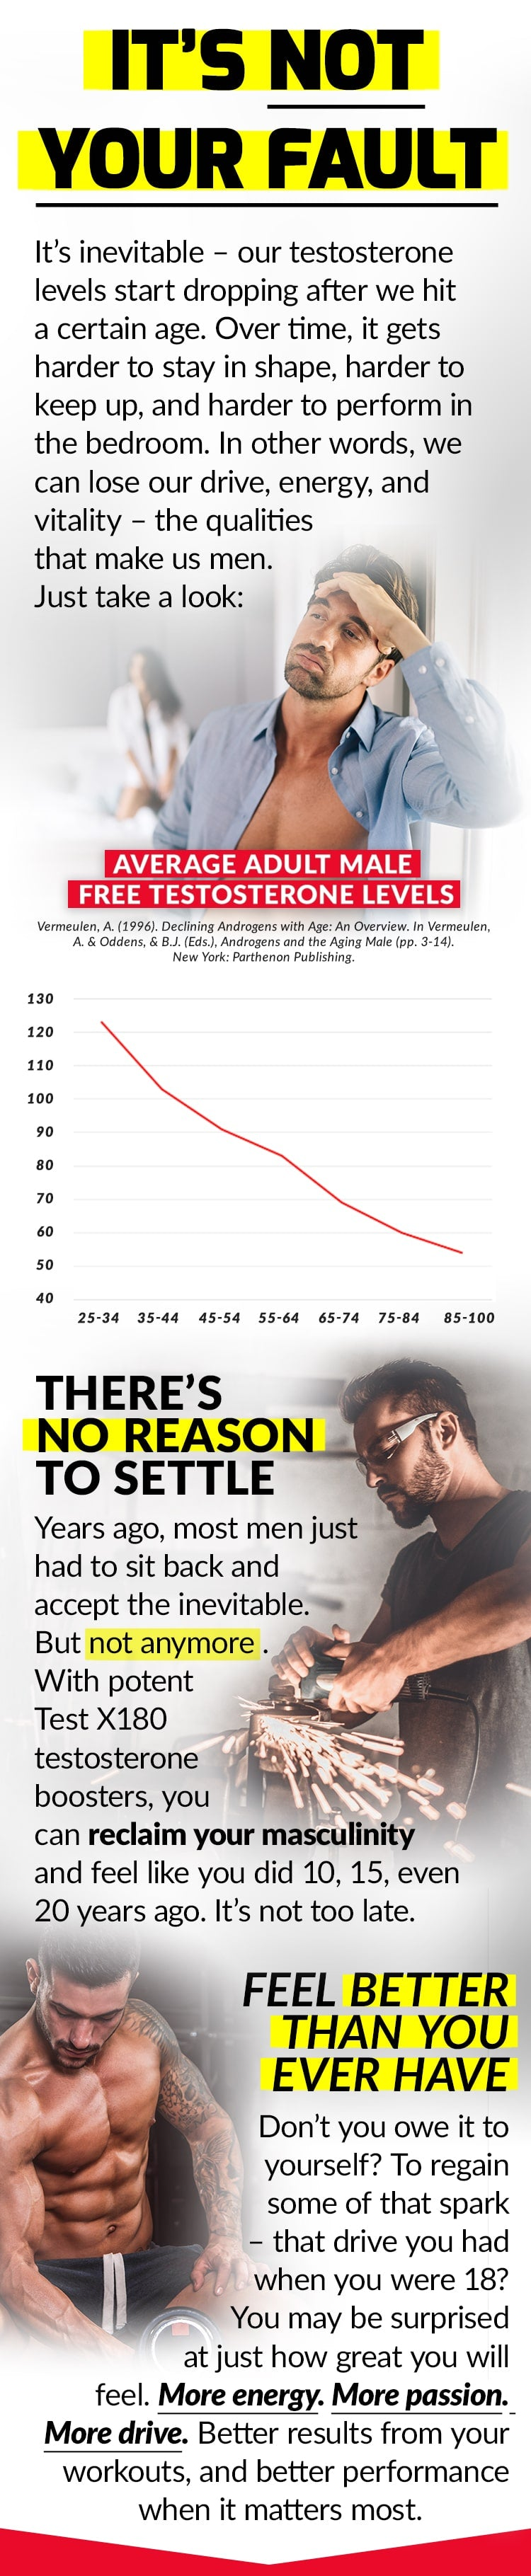 IT'S NOT YOUR FAULT. It's inevitable – our testosterone levels start dropping after we hit a certain age. Over time, it gets harder to stay in shape, harder to keep up, and harder to perform in the bedroom. In other words, we can lose our drive, energy, and vitality – the qualities that make us men. Just take a look: THERE'S NO REASON TO SETTLE Years ago, most men just had to sit back and accept the inevitable. But not anymore. With potent Test X180 testosterone boosters, you can reclaim your masculinity and feel like you did 10, 15, even 20 years ago. It's not too late. FEEL BETTER THAN YOU EVER HAVE. Don't you owe it to yourself? To regain some of that spark – that drive you had when you were 18? You may be surprised at just how great you will feel. More energy. More passion. More drive. Better results from your workouts, and better performance when it matters most.